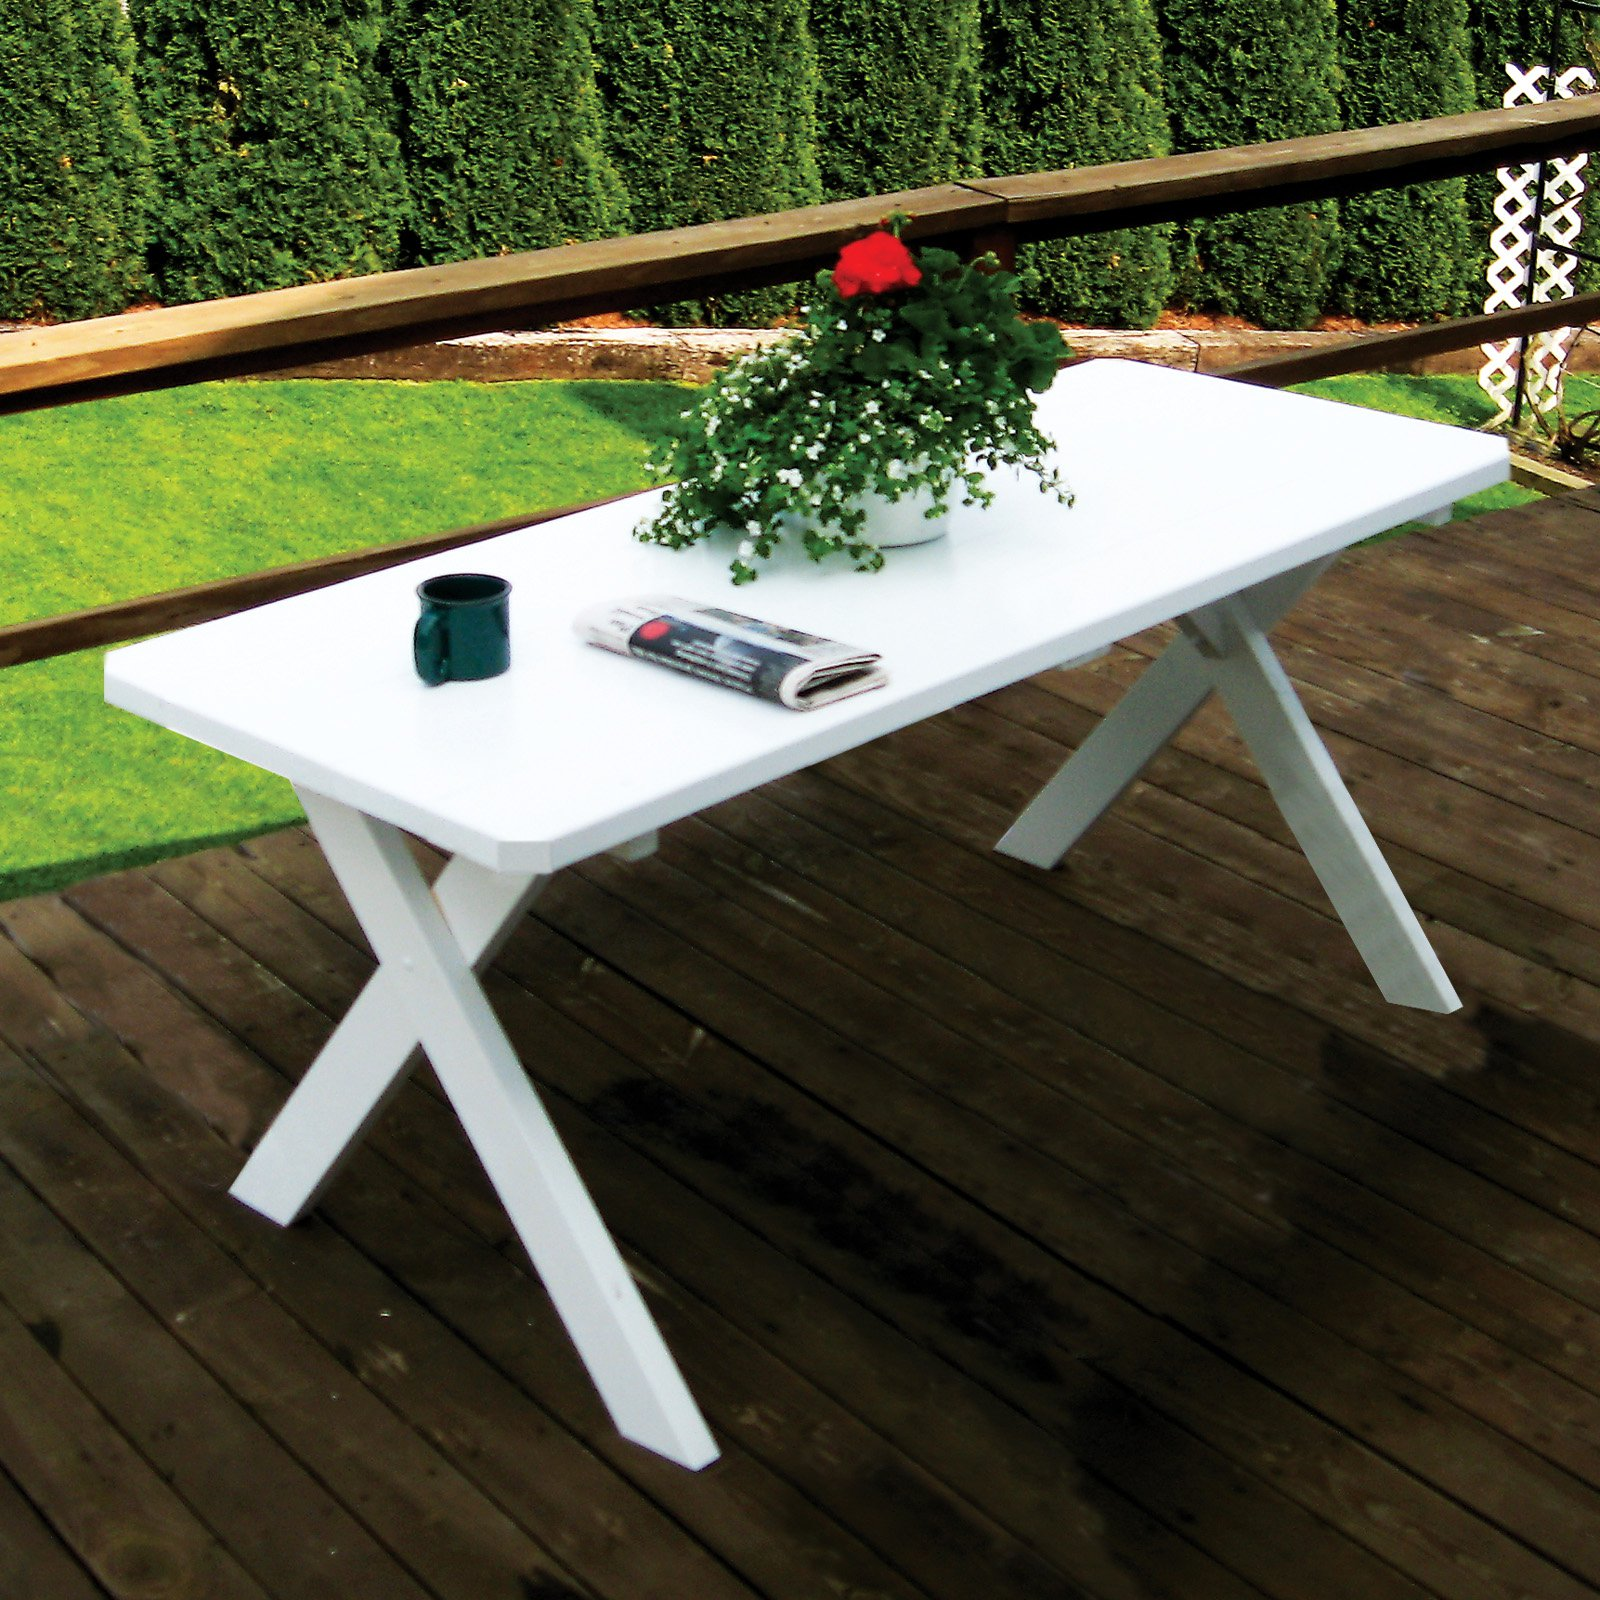 Trex Outdoor Furniture Recycled Plastic Cape Cod Round 48 in